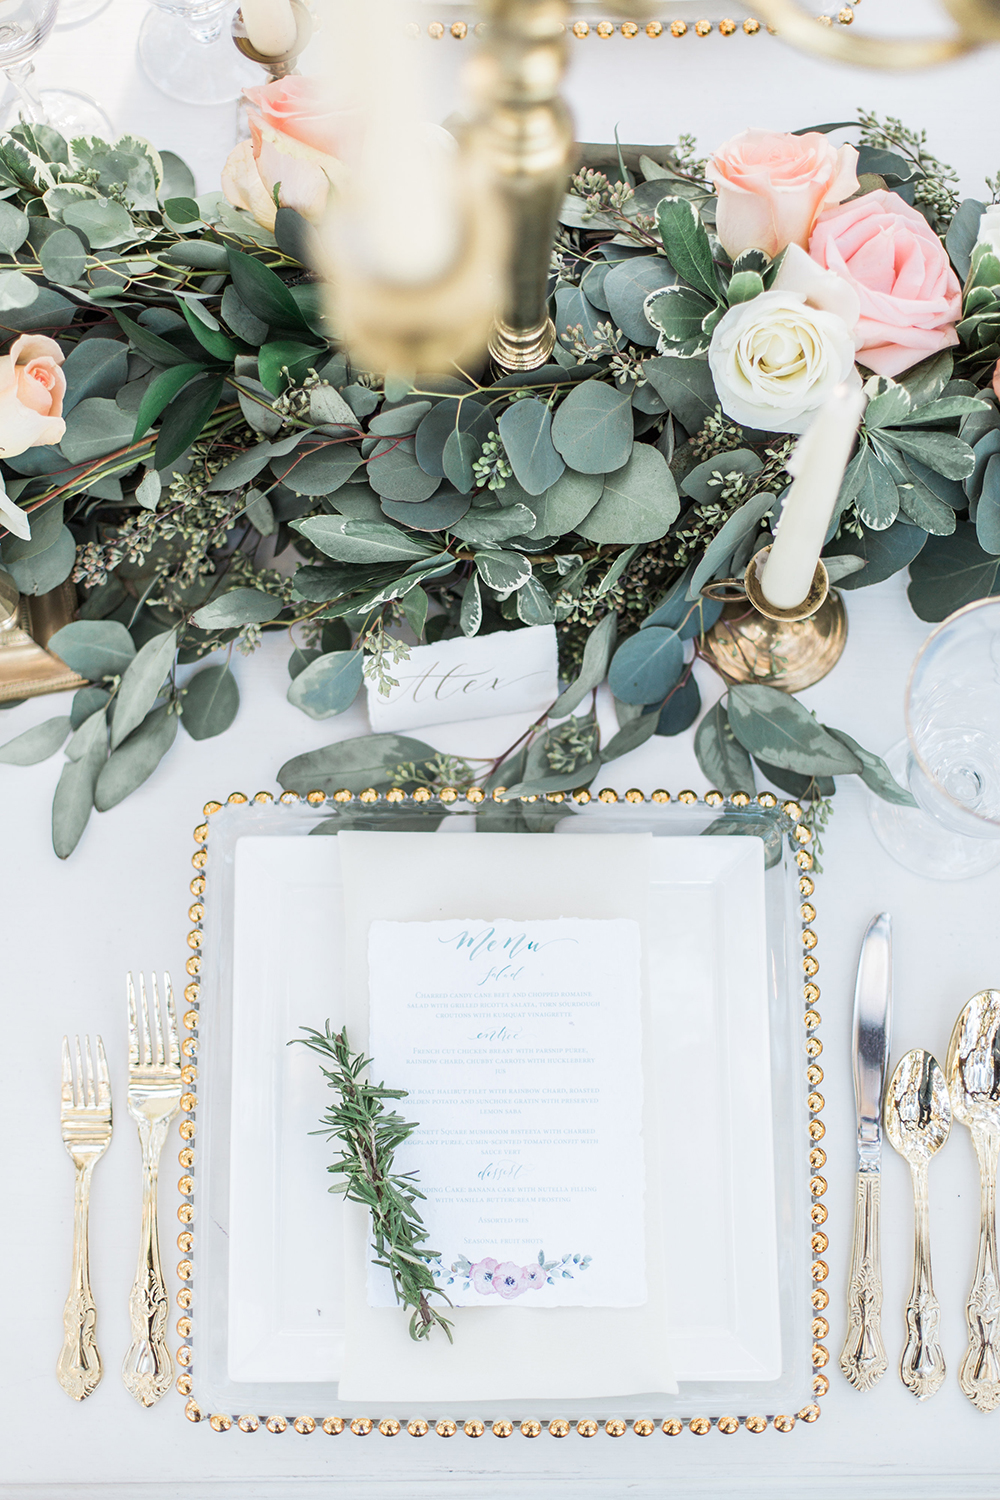 romantic place settings - photo by Landon Hendrick Photography http://ruffledblog.com/southern-garden-chic-wedding-inspiration